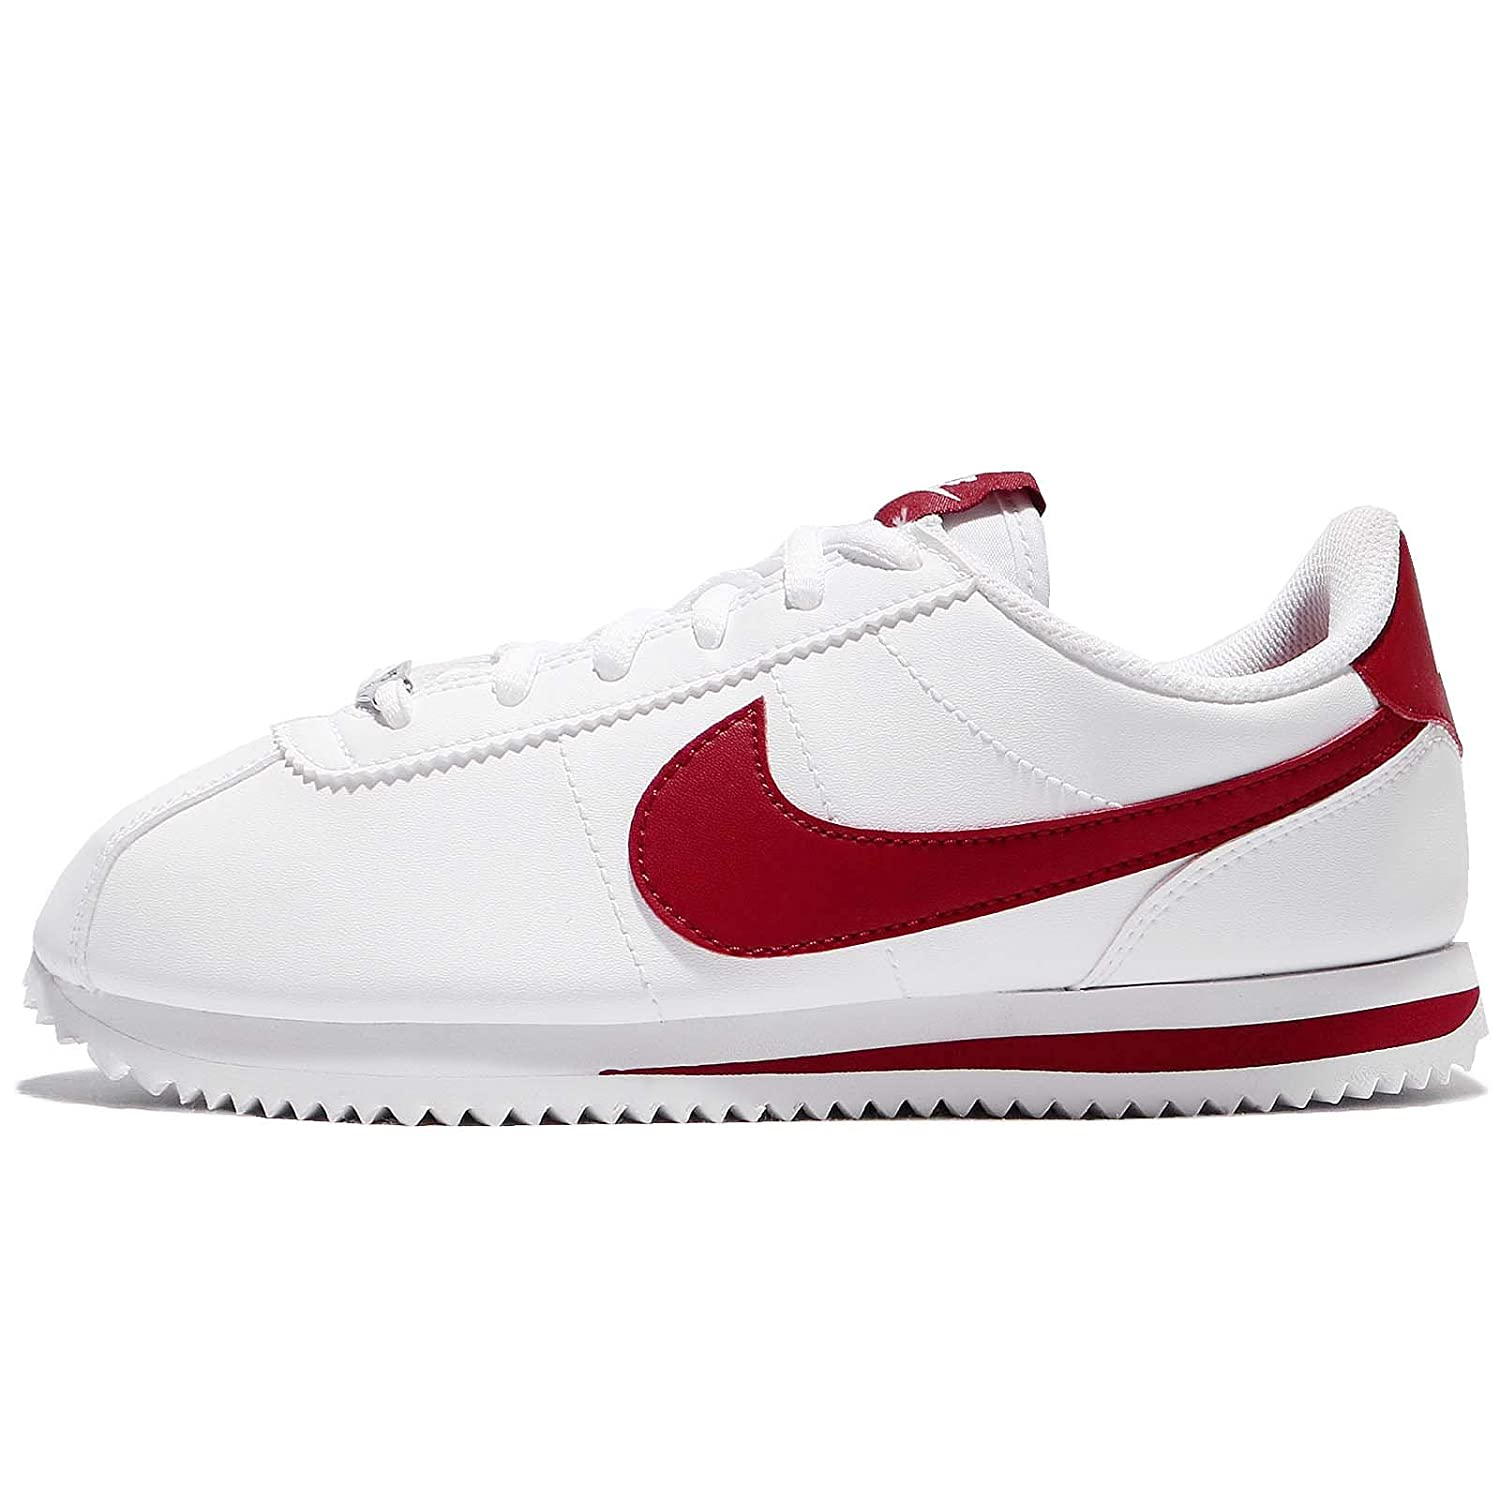 EuAmazon Synthetic Trainers Cortez White Nike Red Youth Basic 39 80wkXNnOPZ